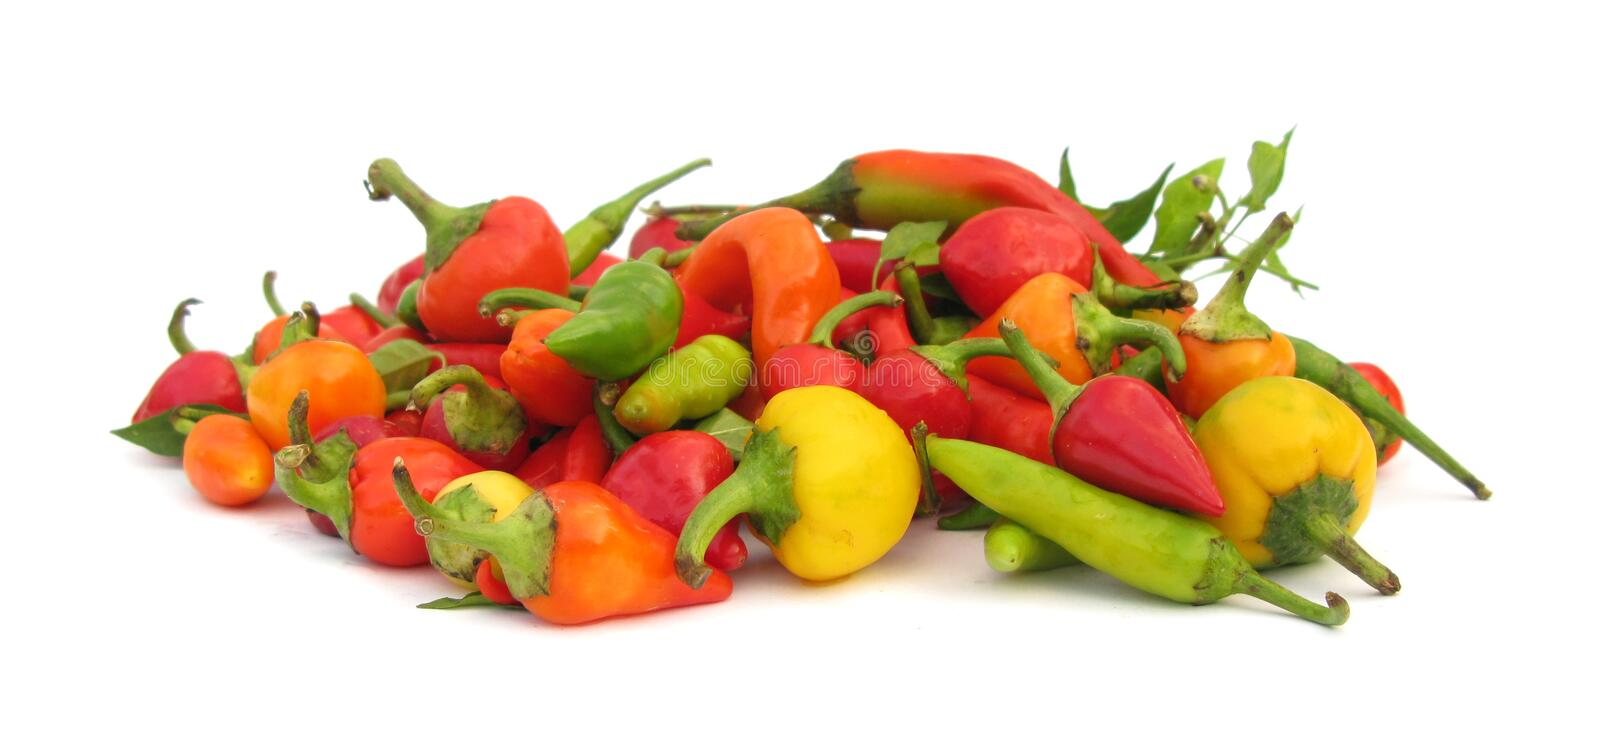 Chili peppers paprika royalty free stock photos